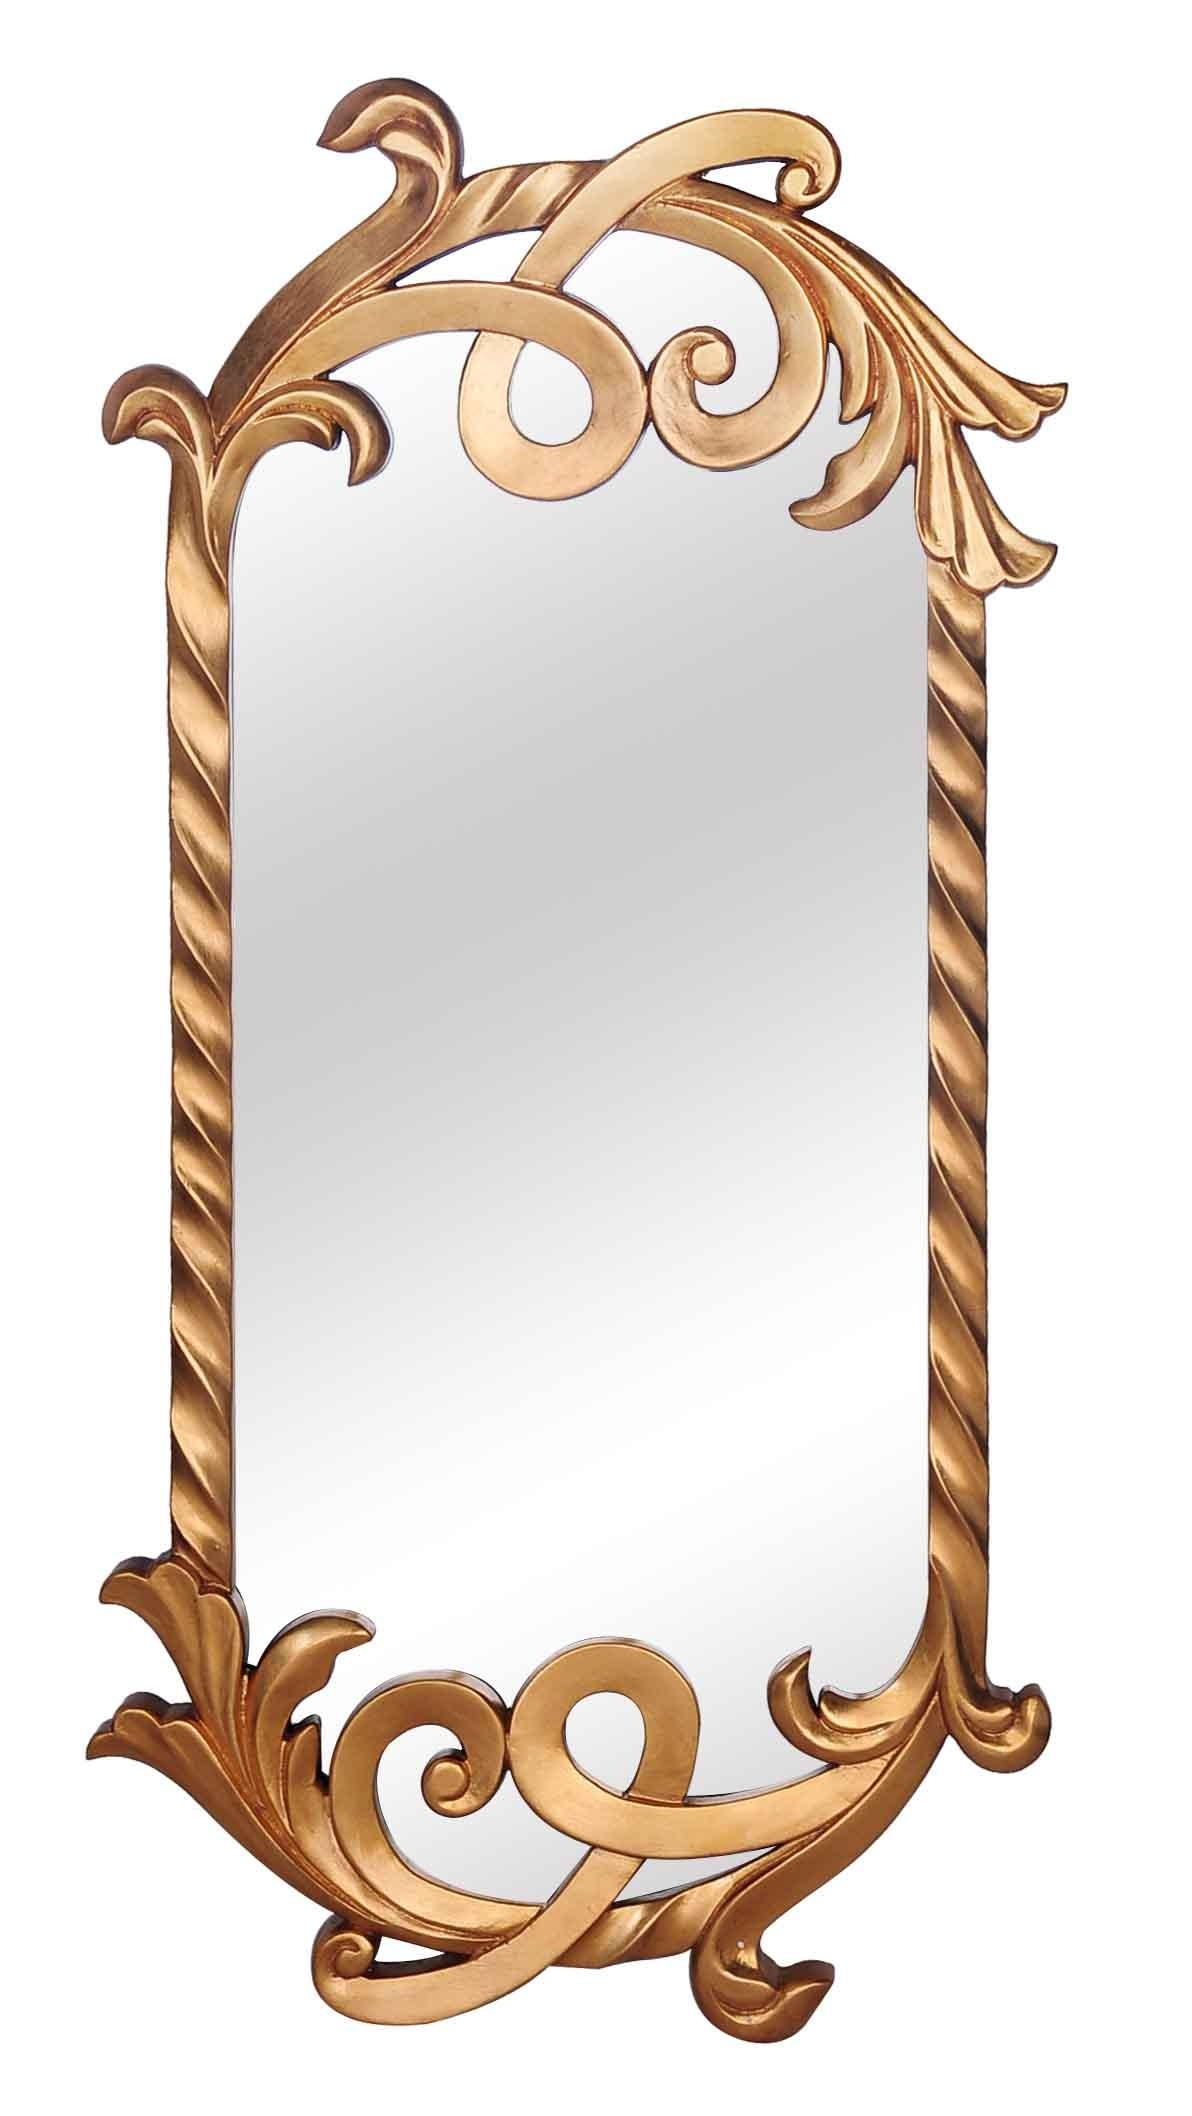 Ornate Mirror Frame, Ornate Mirror Frame Suppliers And In Mirrors Ornate (Image 13 of 20)